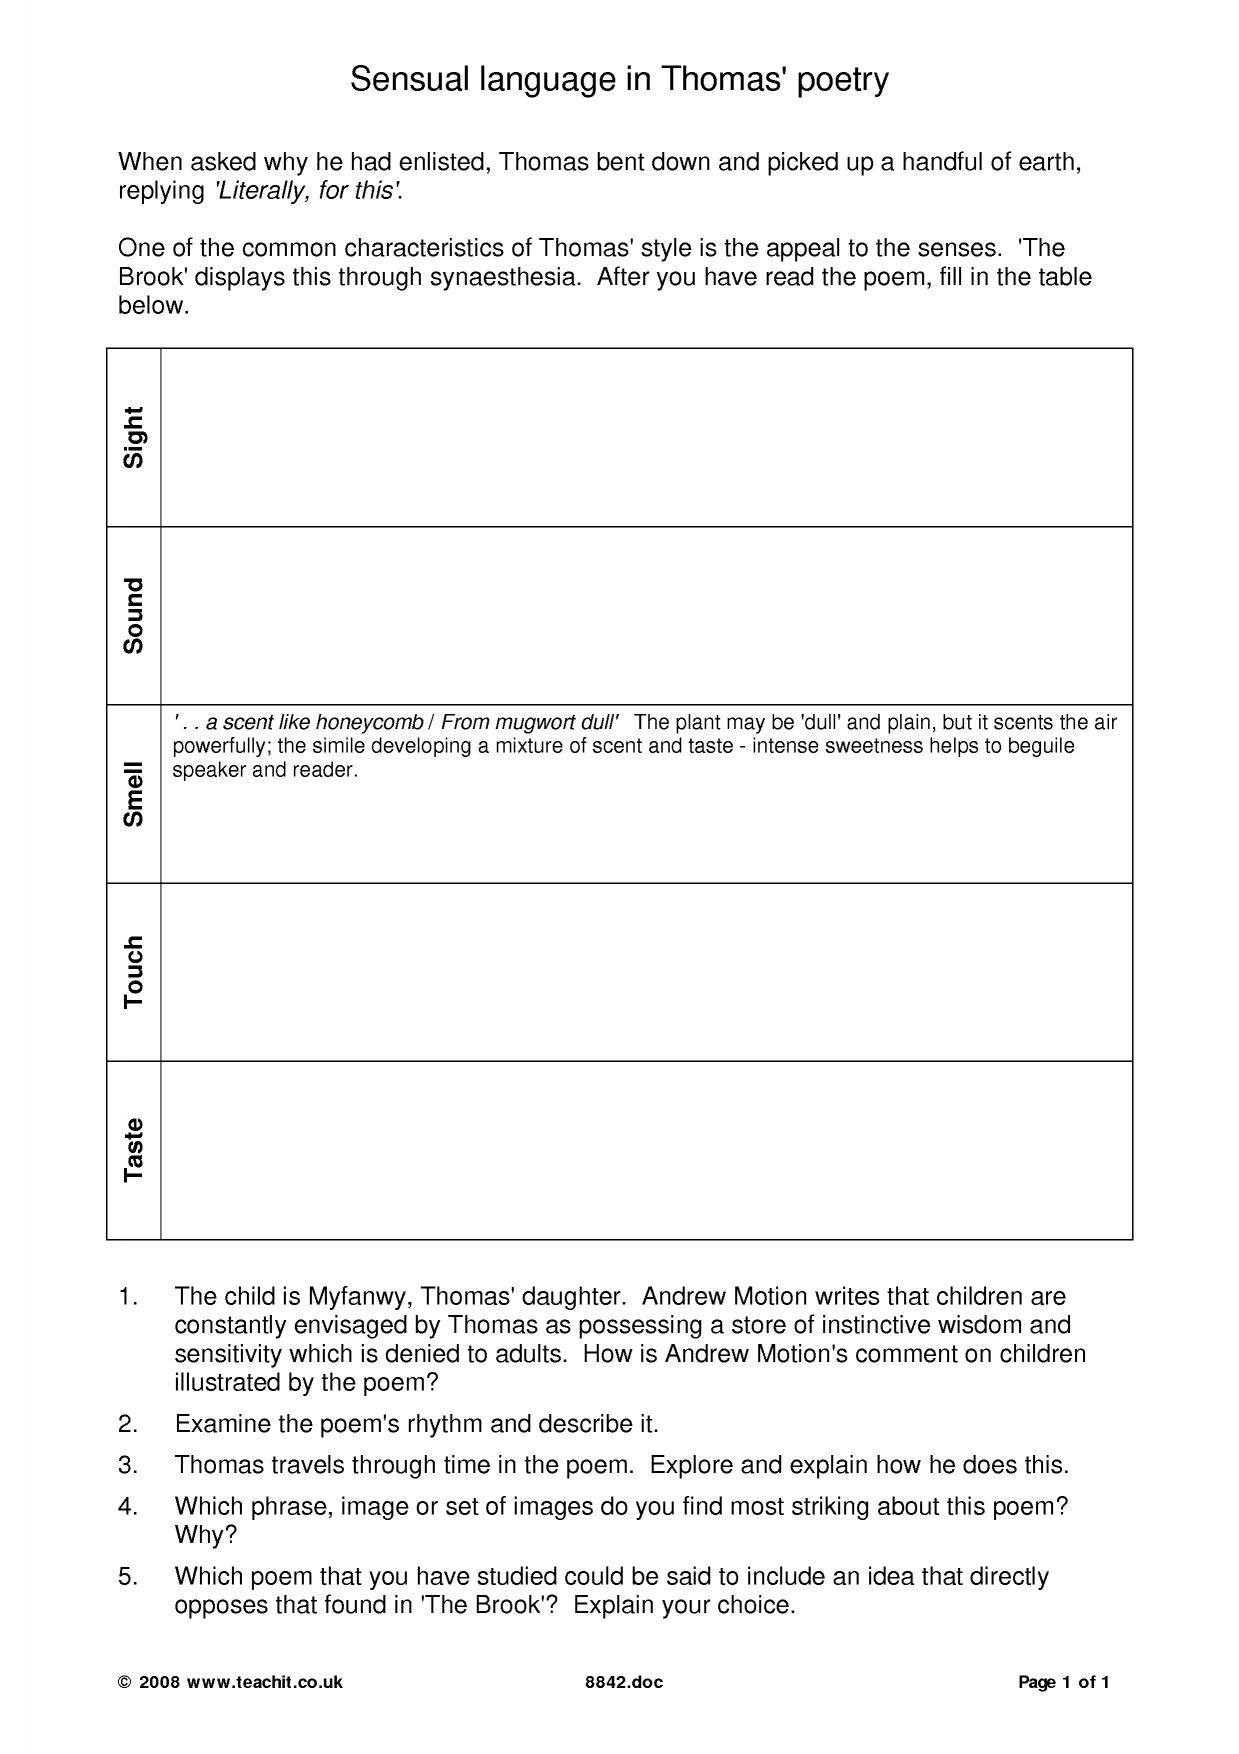 Uncategorized Scientific Measurement Worksheets 466227438767 division facts worksheet generator pdf what is 2nd grade math test prep worksheets rupert brooke wilfred owen search results teachit english scientific